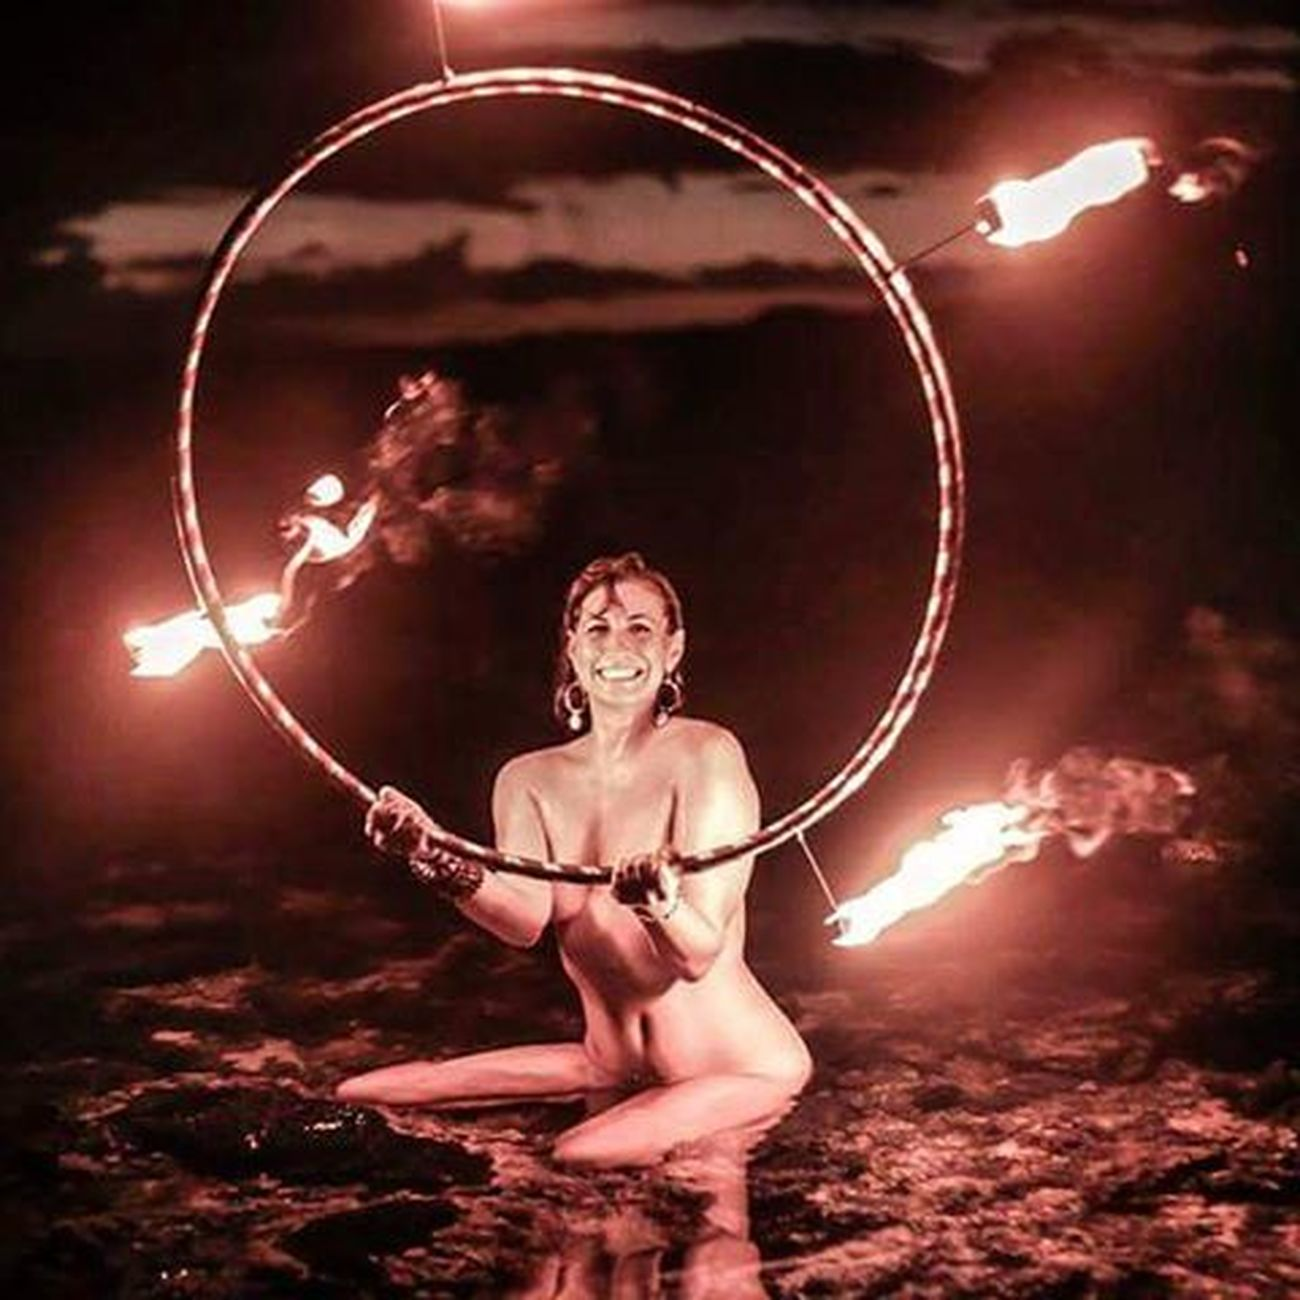 Fire goddess Maui Artnude Beautiful Goddesses Freethegoddess FreeTheNipple Youonlyliveonce Befree Mauiphotography Mauinokaoi Beach Hawaii Fire Pyro Pyrohearted Flowarts Flo Firedance Seanymph Firesiren Burningwoman Hoop Love